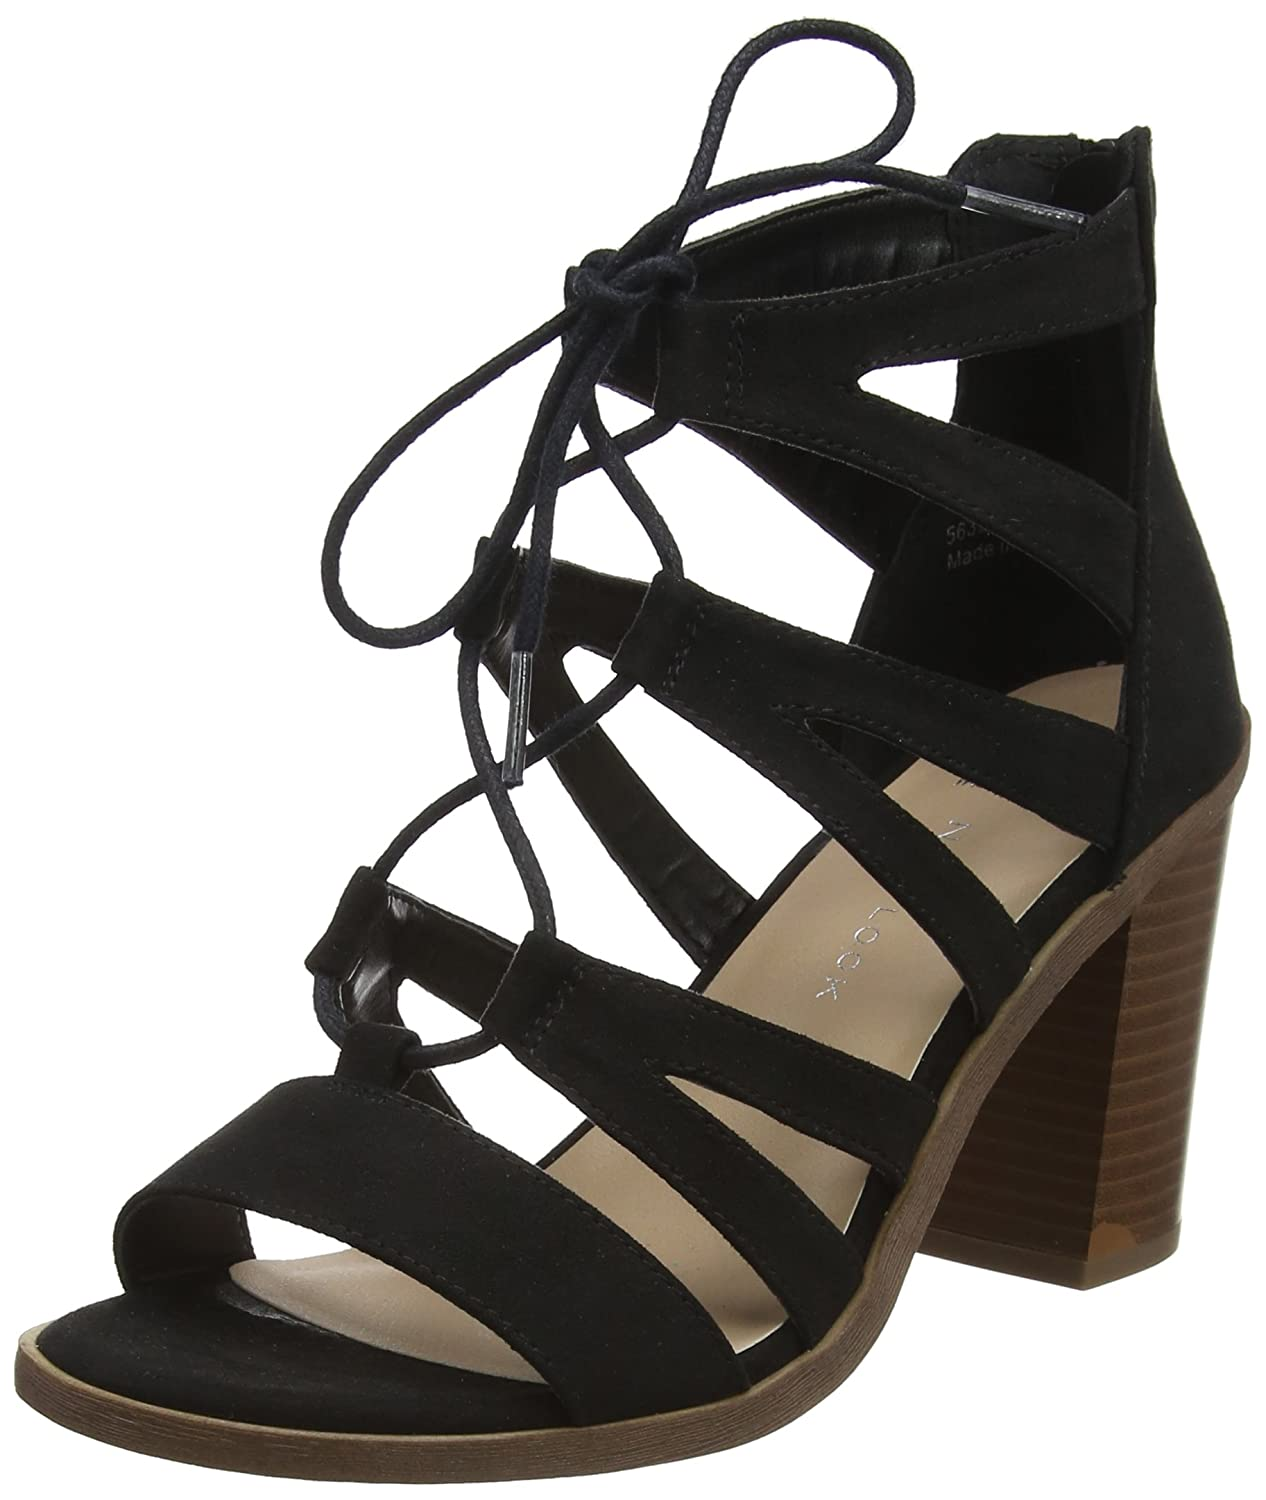 New Look Wide Foot Oliana, Sandales Bout Ouvert Femme 5635492